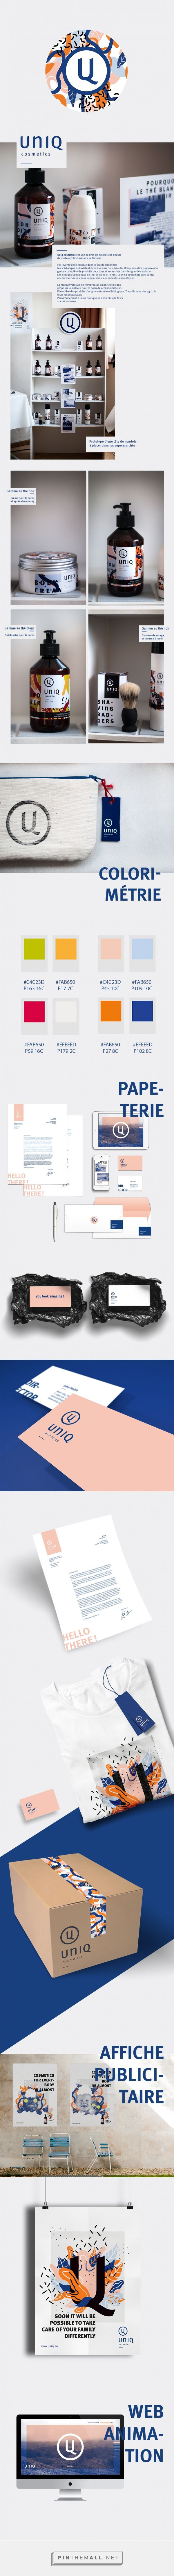 UNIQ Cosmetics Branding and Packaging by Adele Peers | Fivestar Branding Agency – Design and Branding Agency & Curated Inspiration Gallery